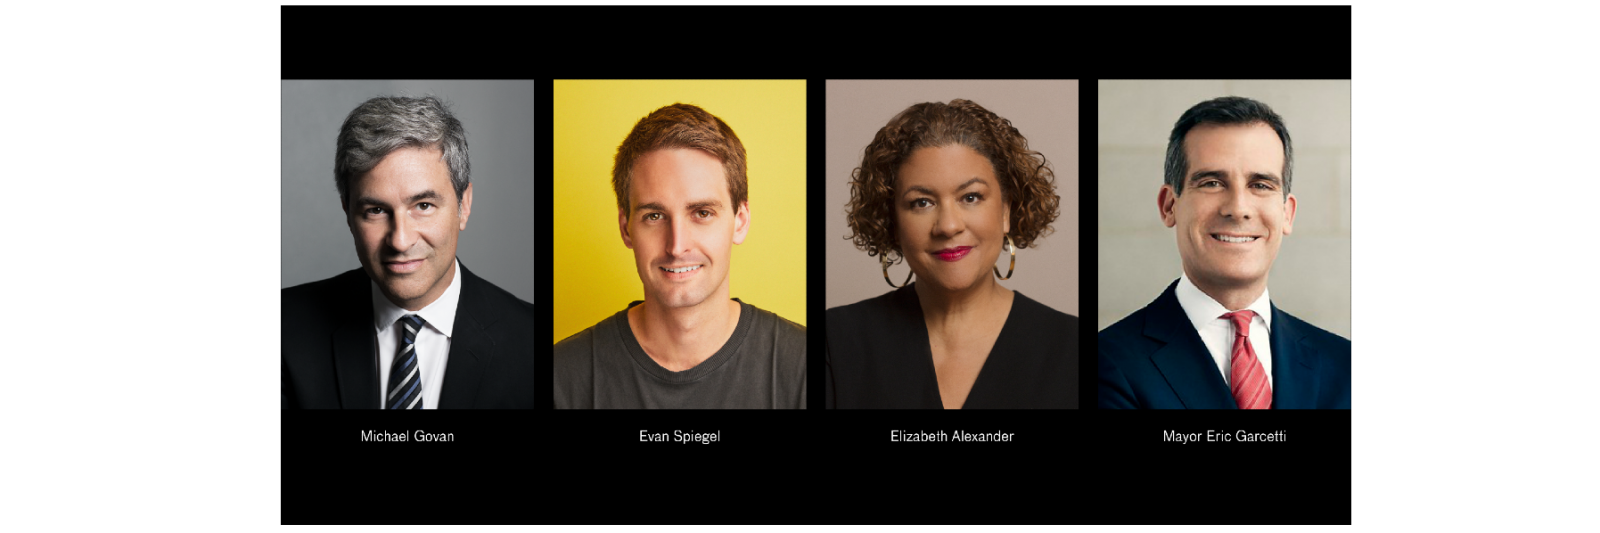 In Conversation: Michael Govan, Evan Spiegel, Elizabeth Alexander, and Mayor Eric Garcetti